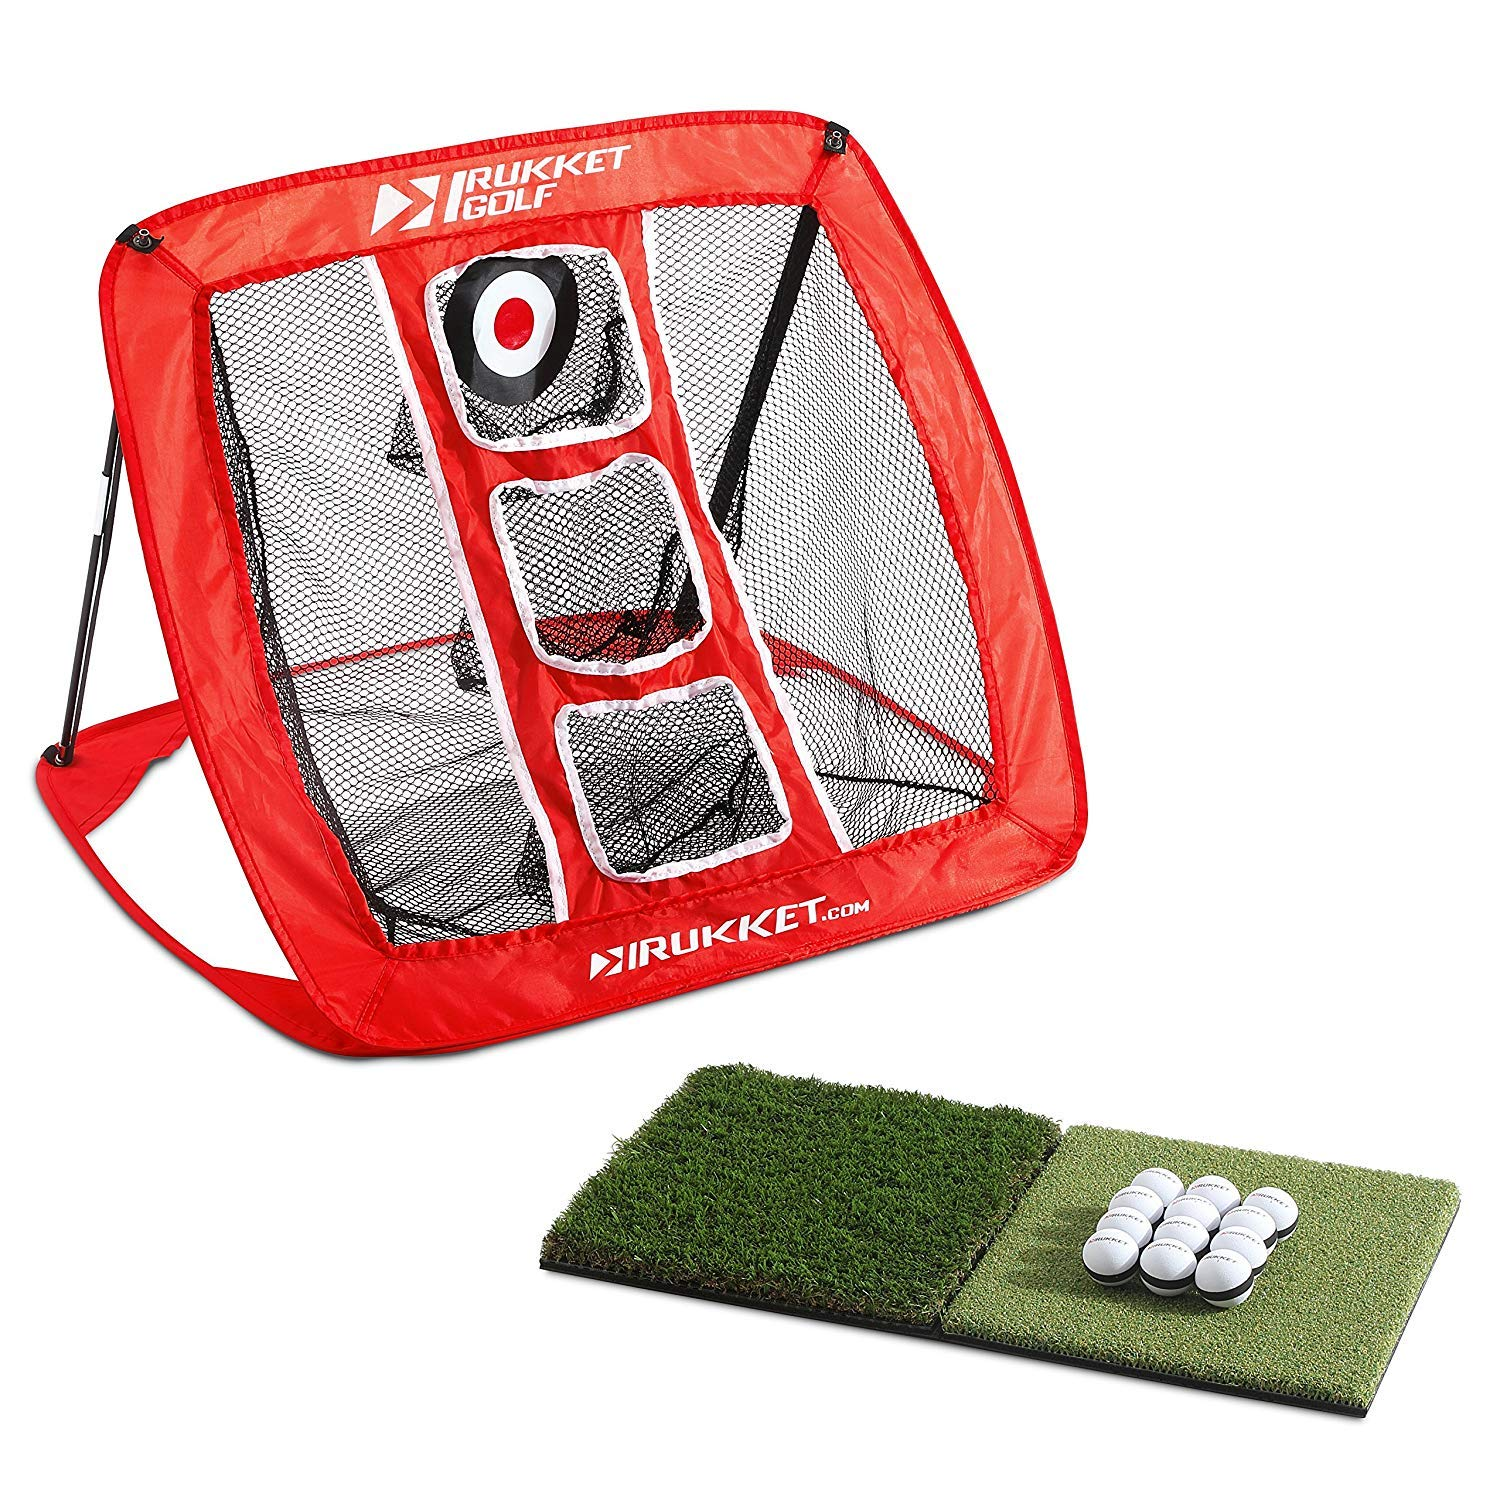 Rukket Pop Up Golf Chipping Net | Outdoor/Indoor Golfing Target Accessories and Backyard Practice Swing Game with 12 Foam Training Balls, Dual Turf Hitting Mat and Adjustable Rubber Tee by Rukket Sports